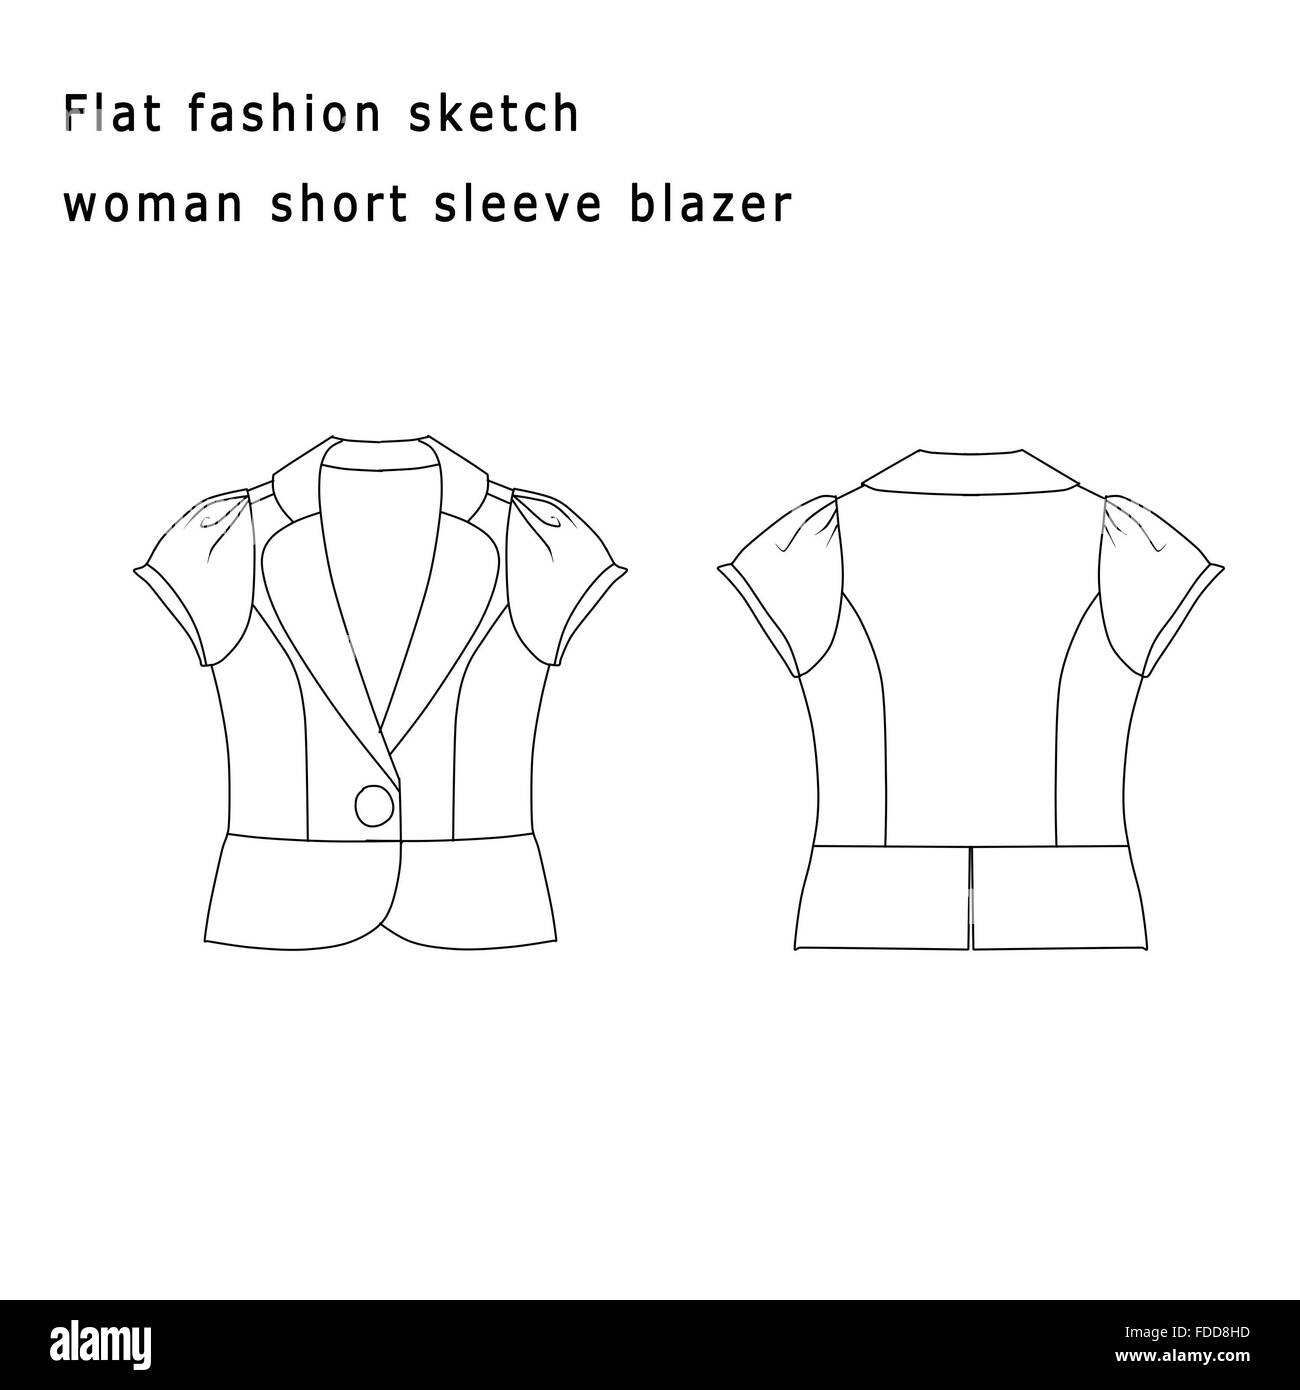 Fashion Illustration Fashion Flat Template Woman Short Blazer